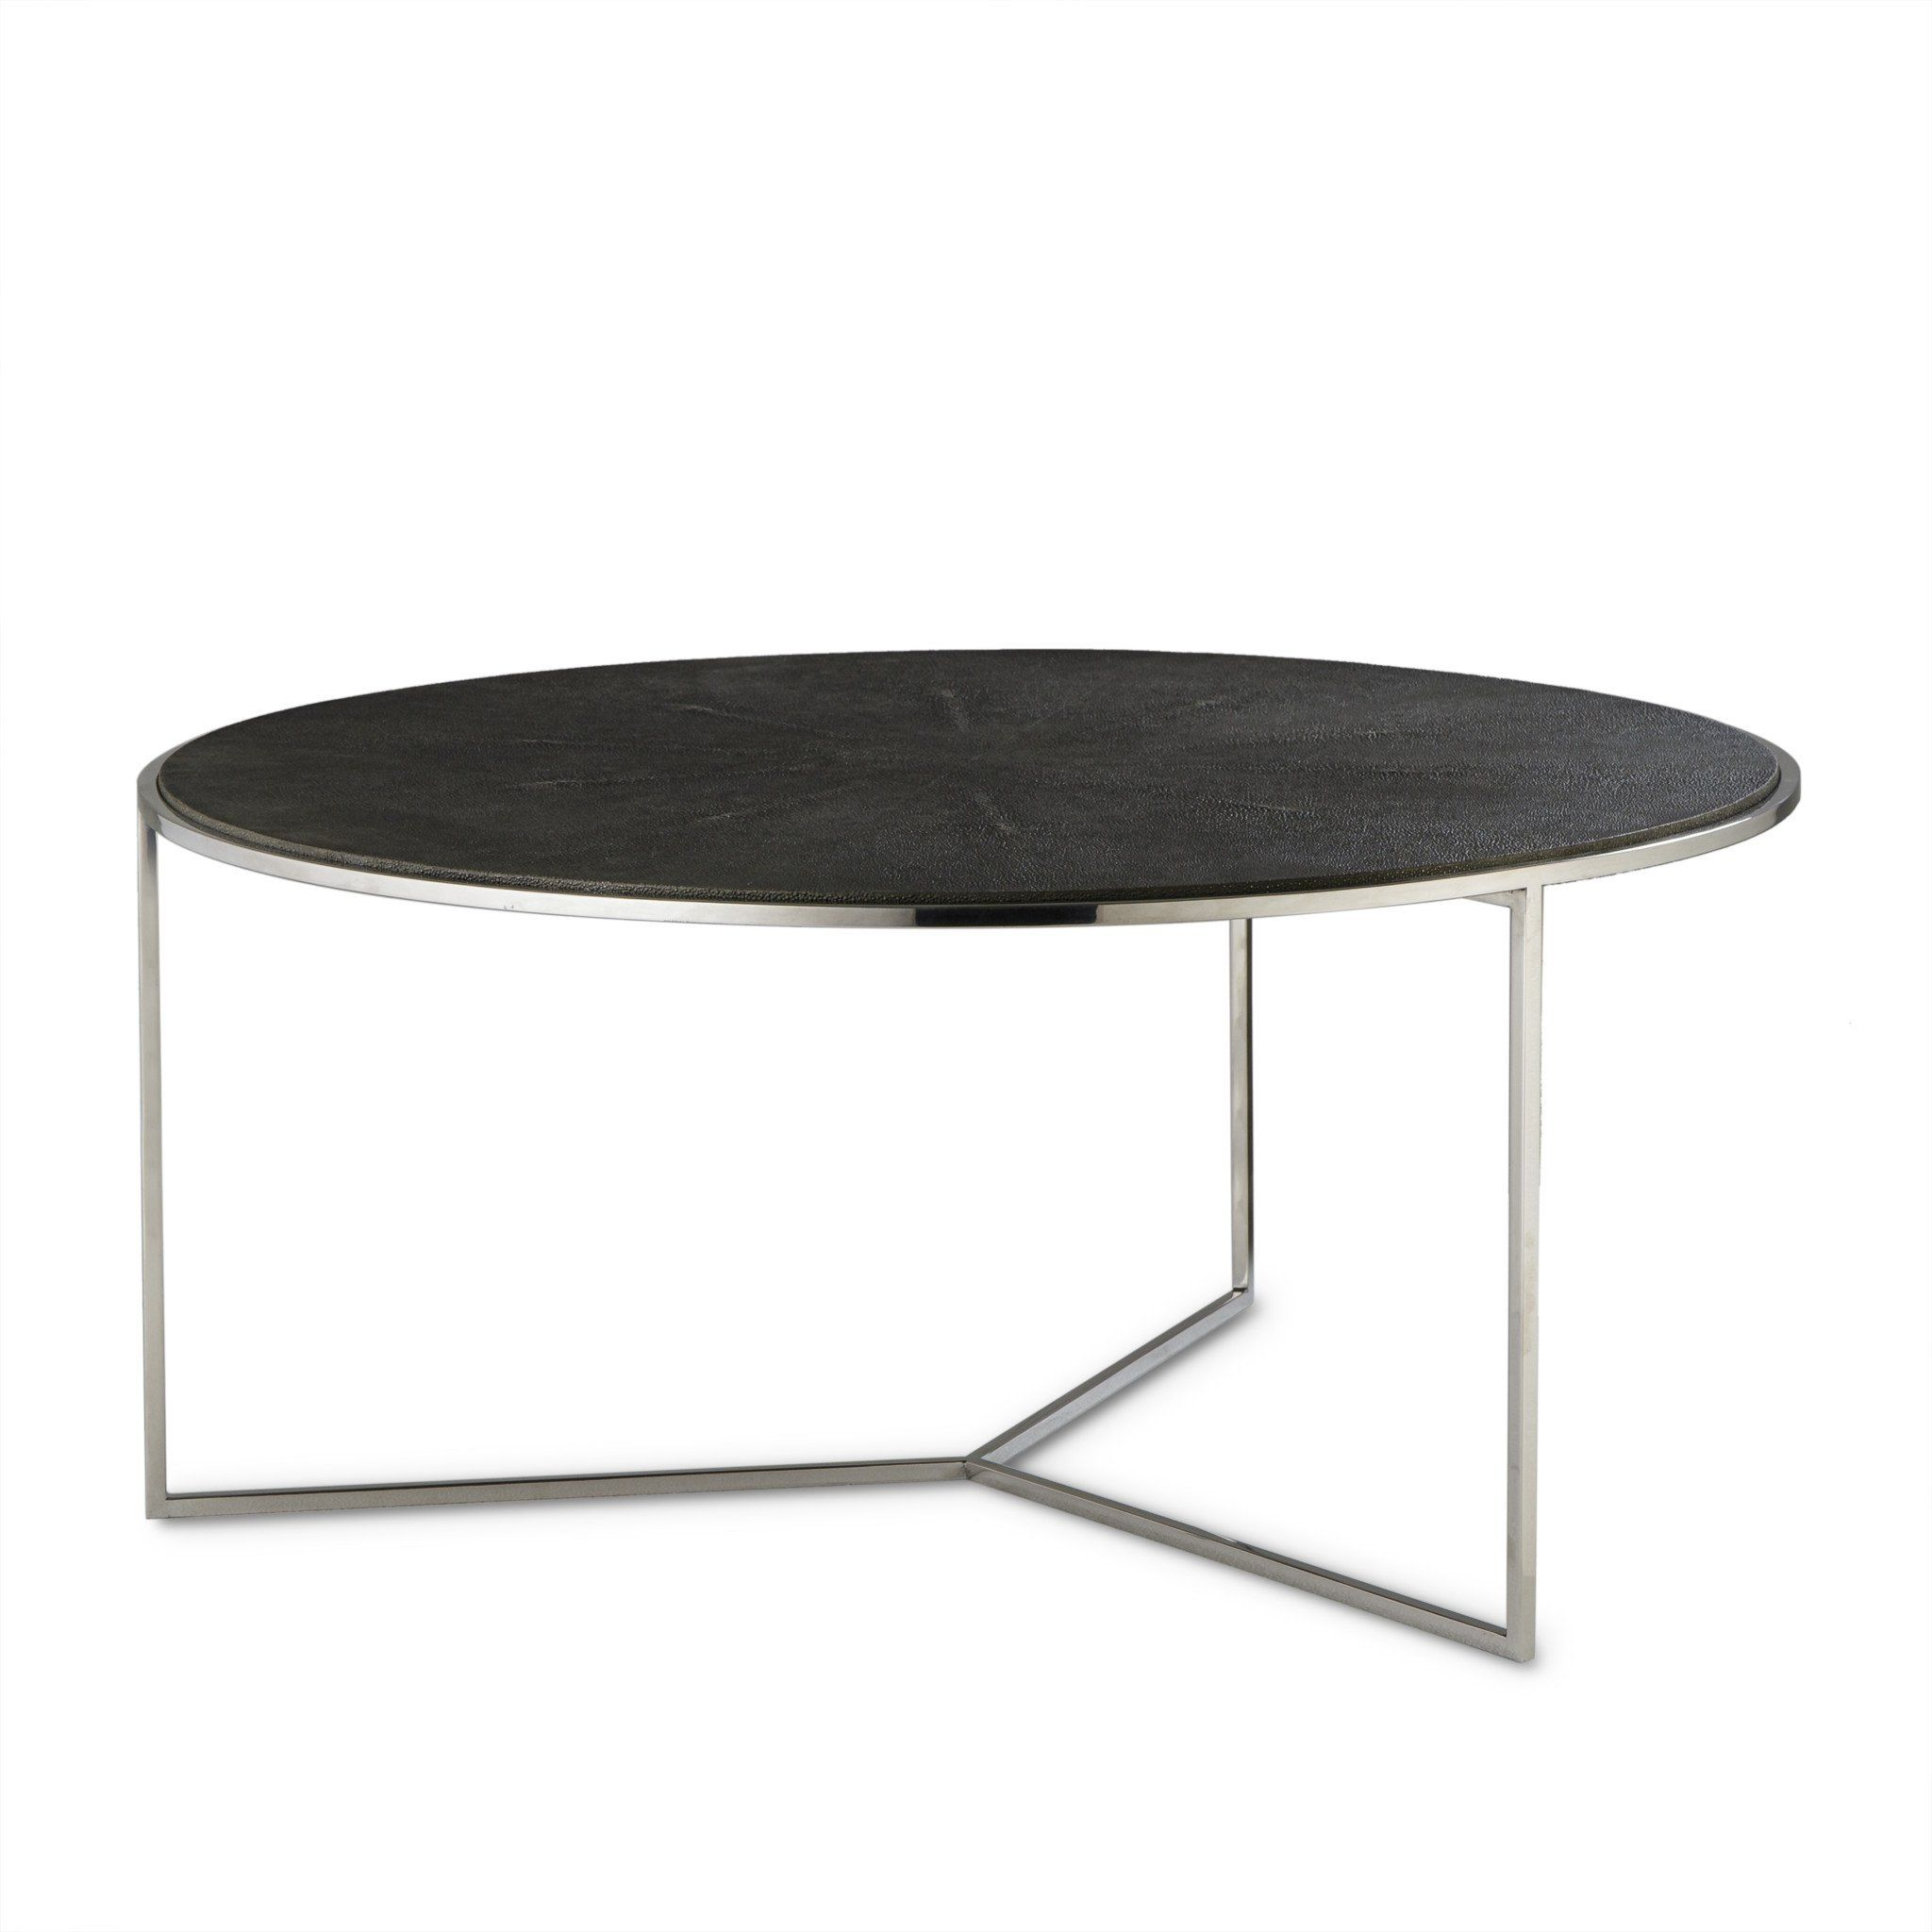 Nathan Coffee Table In 2021 Coffee Table Shagreen Coffee Table Modern Glass Coffee Table [ jpg ]